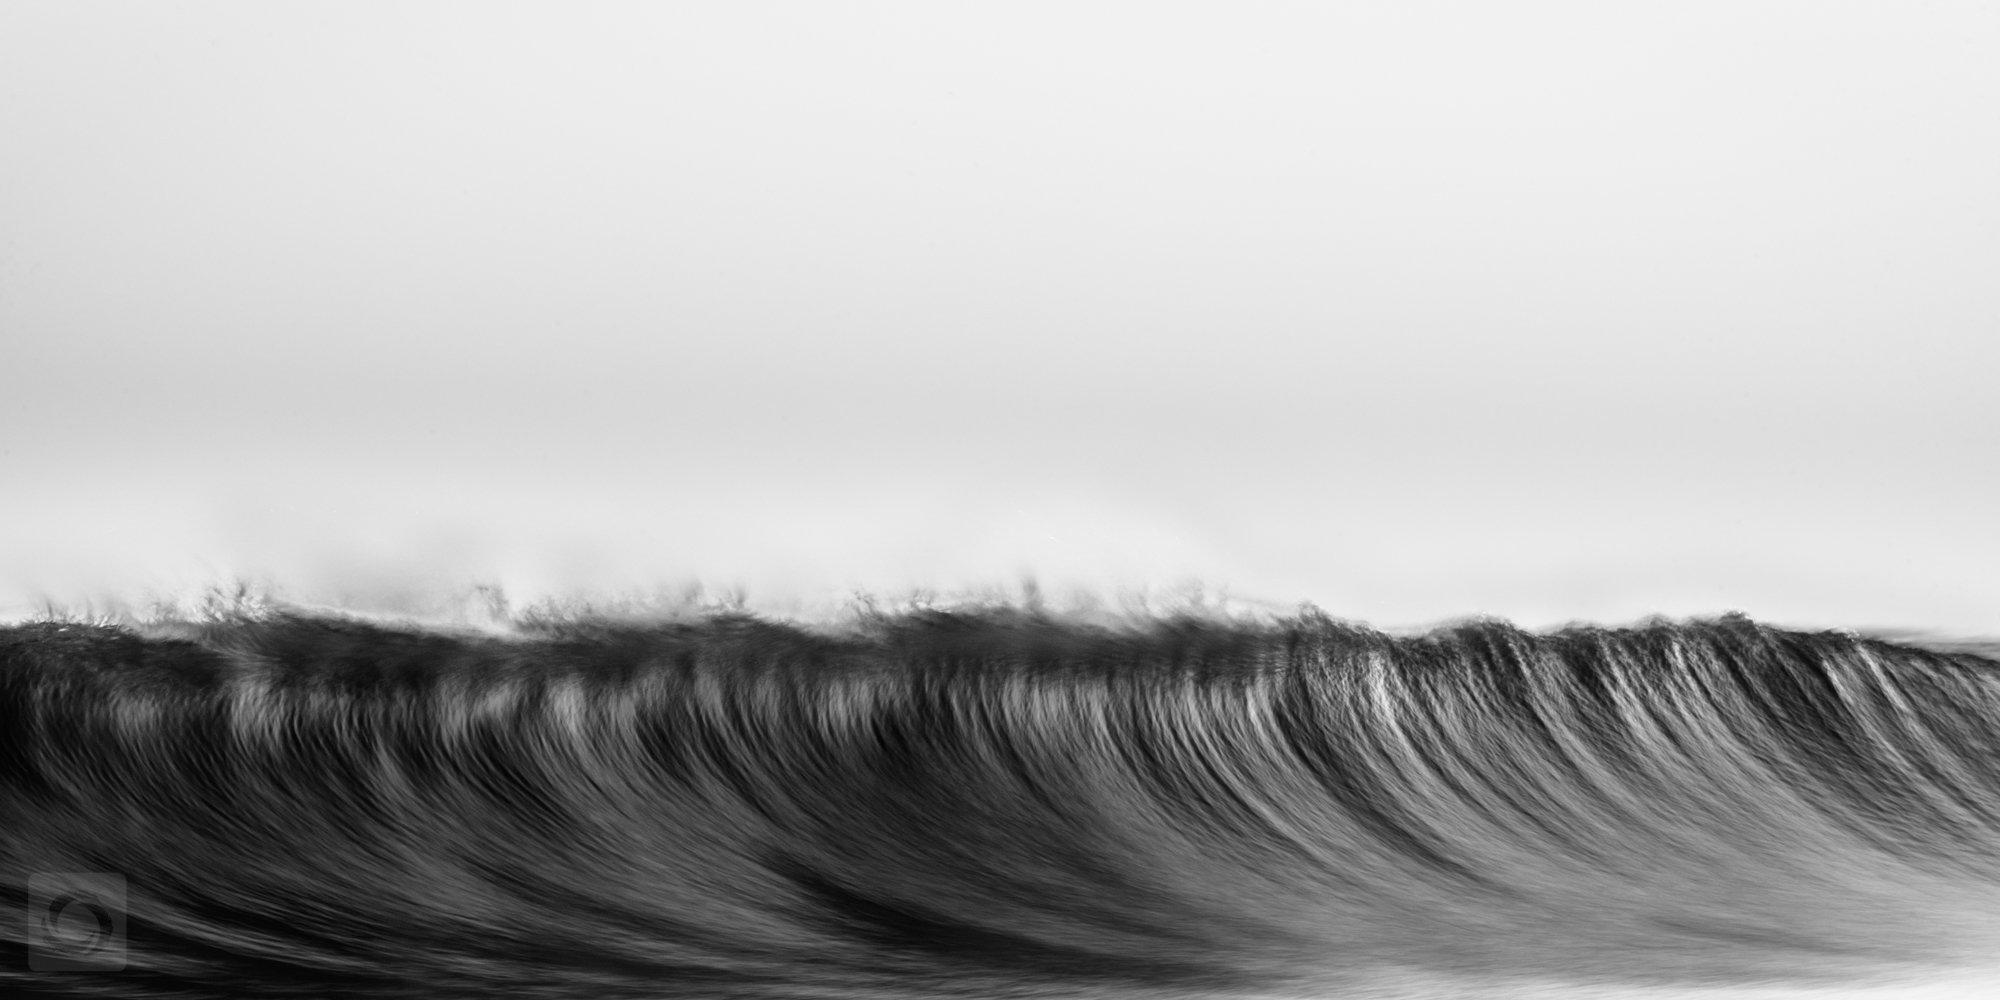 Waves of silver ocean photography